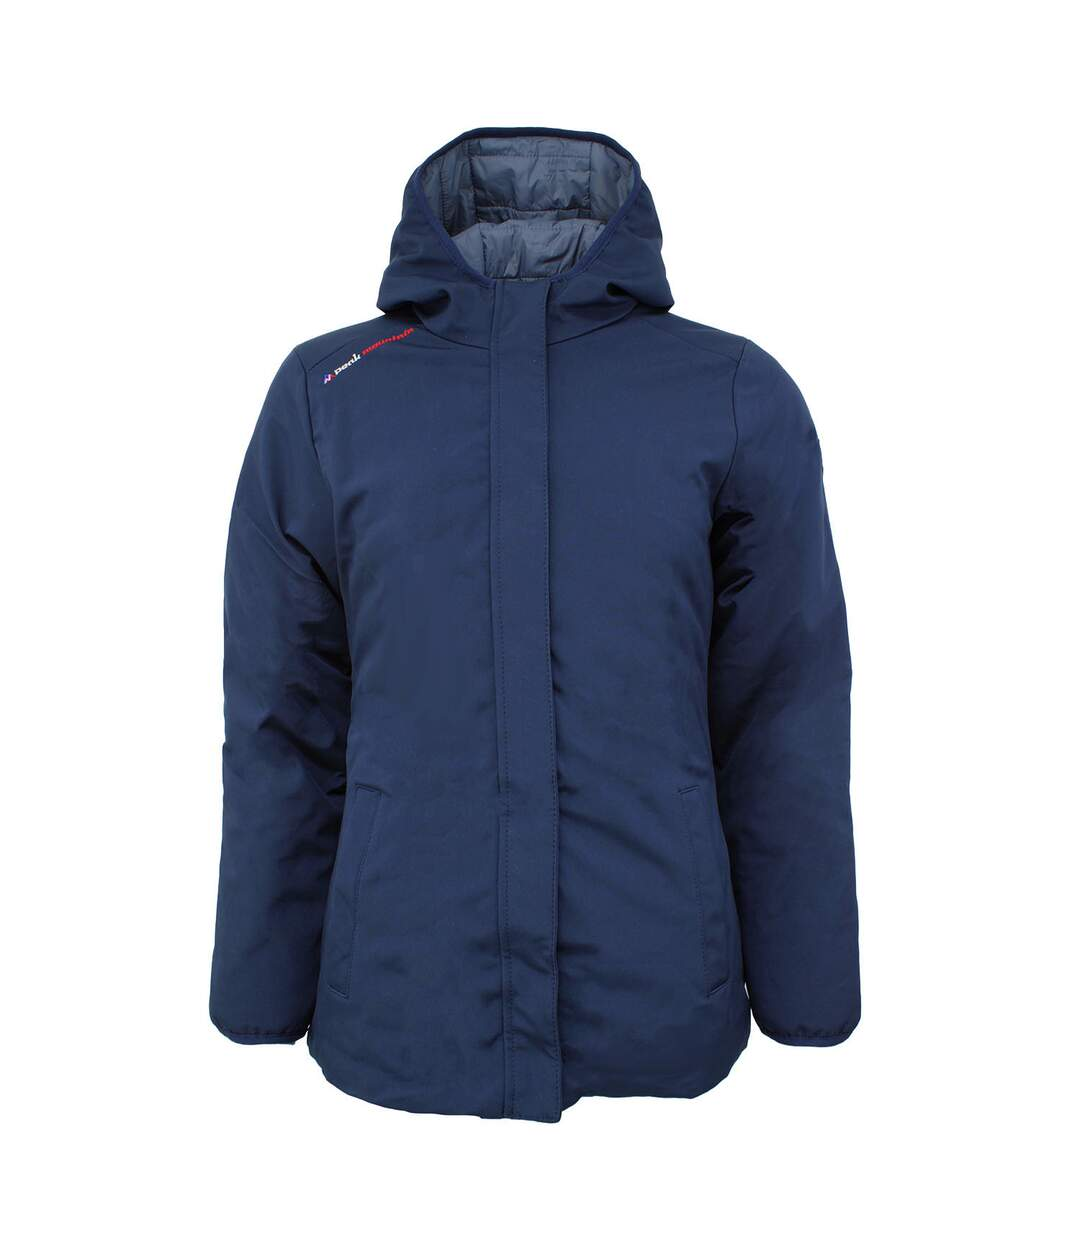 Peak Mountain - Reversible parka ASARIO